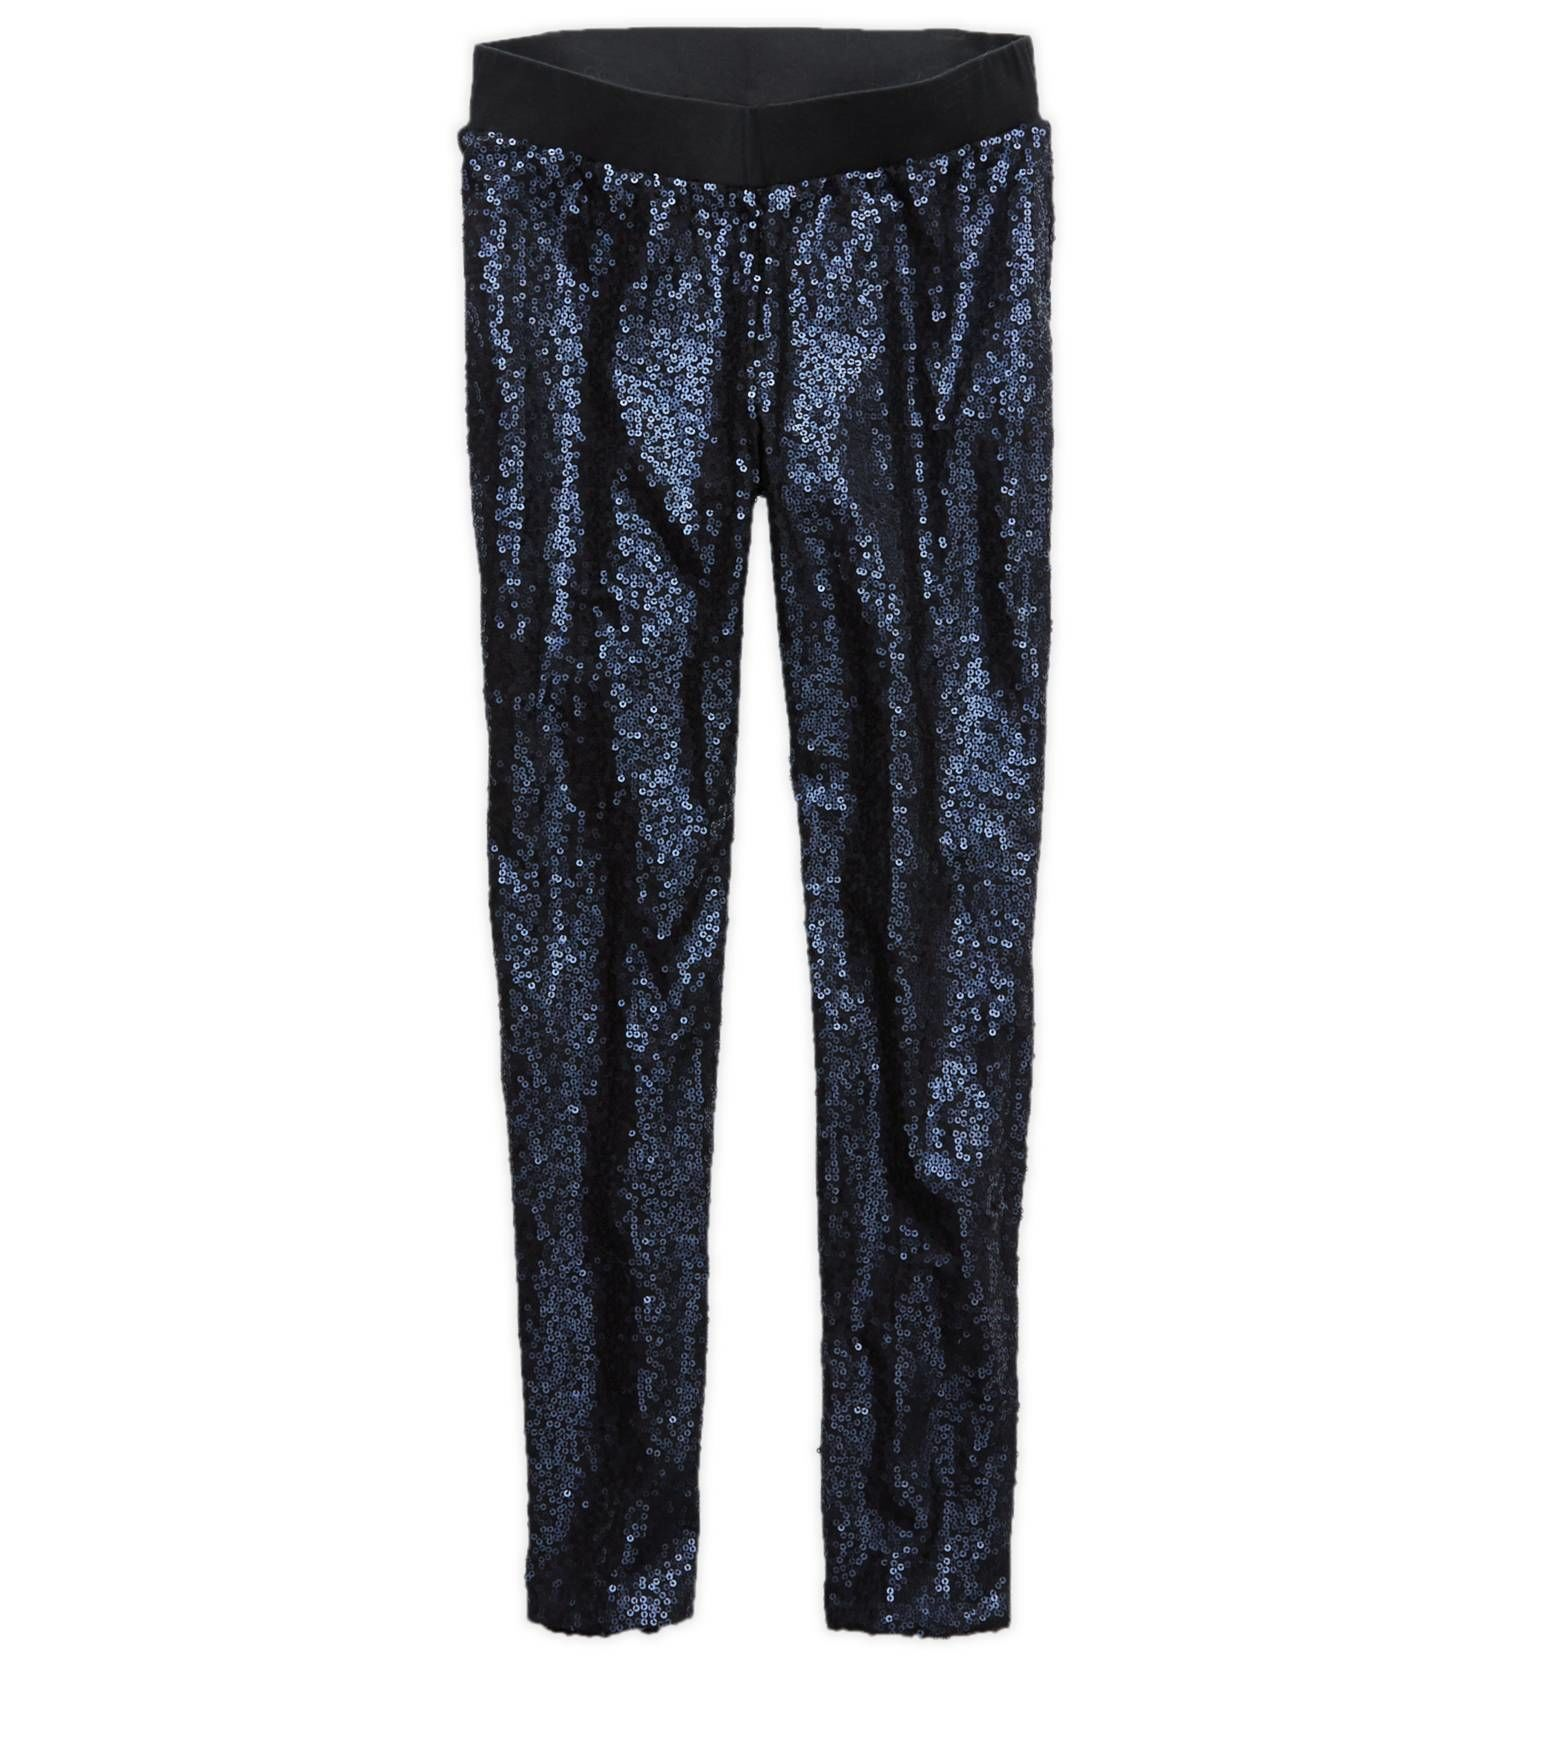 Tyler's Sparkly Lounge Pants - Fashionista